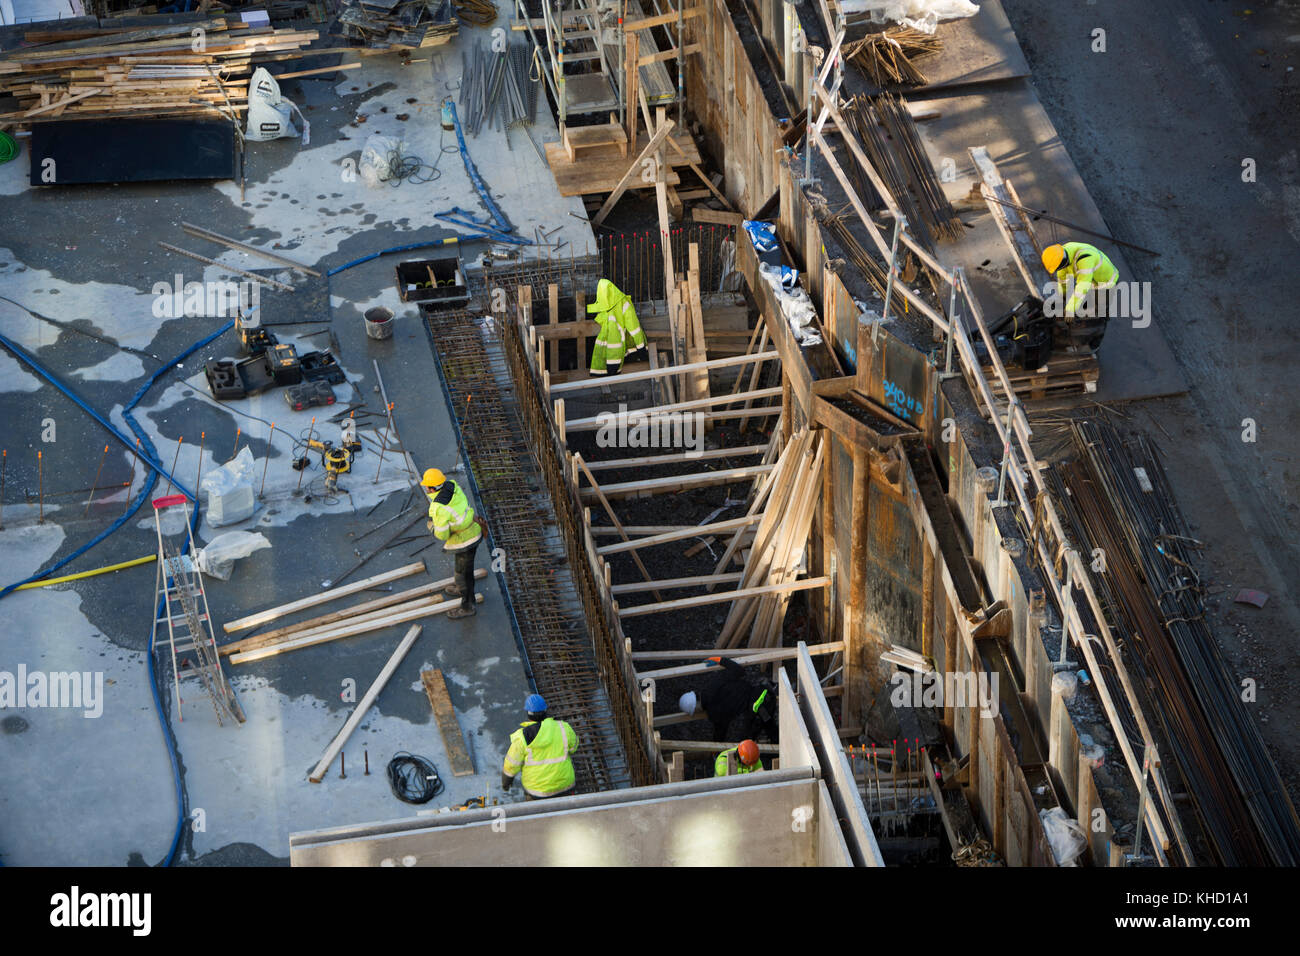 Construction Workplace, Sundbyberg, Sweden. - Stock Image